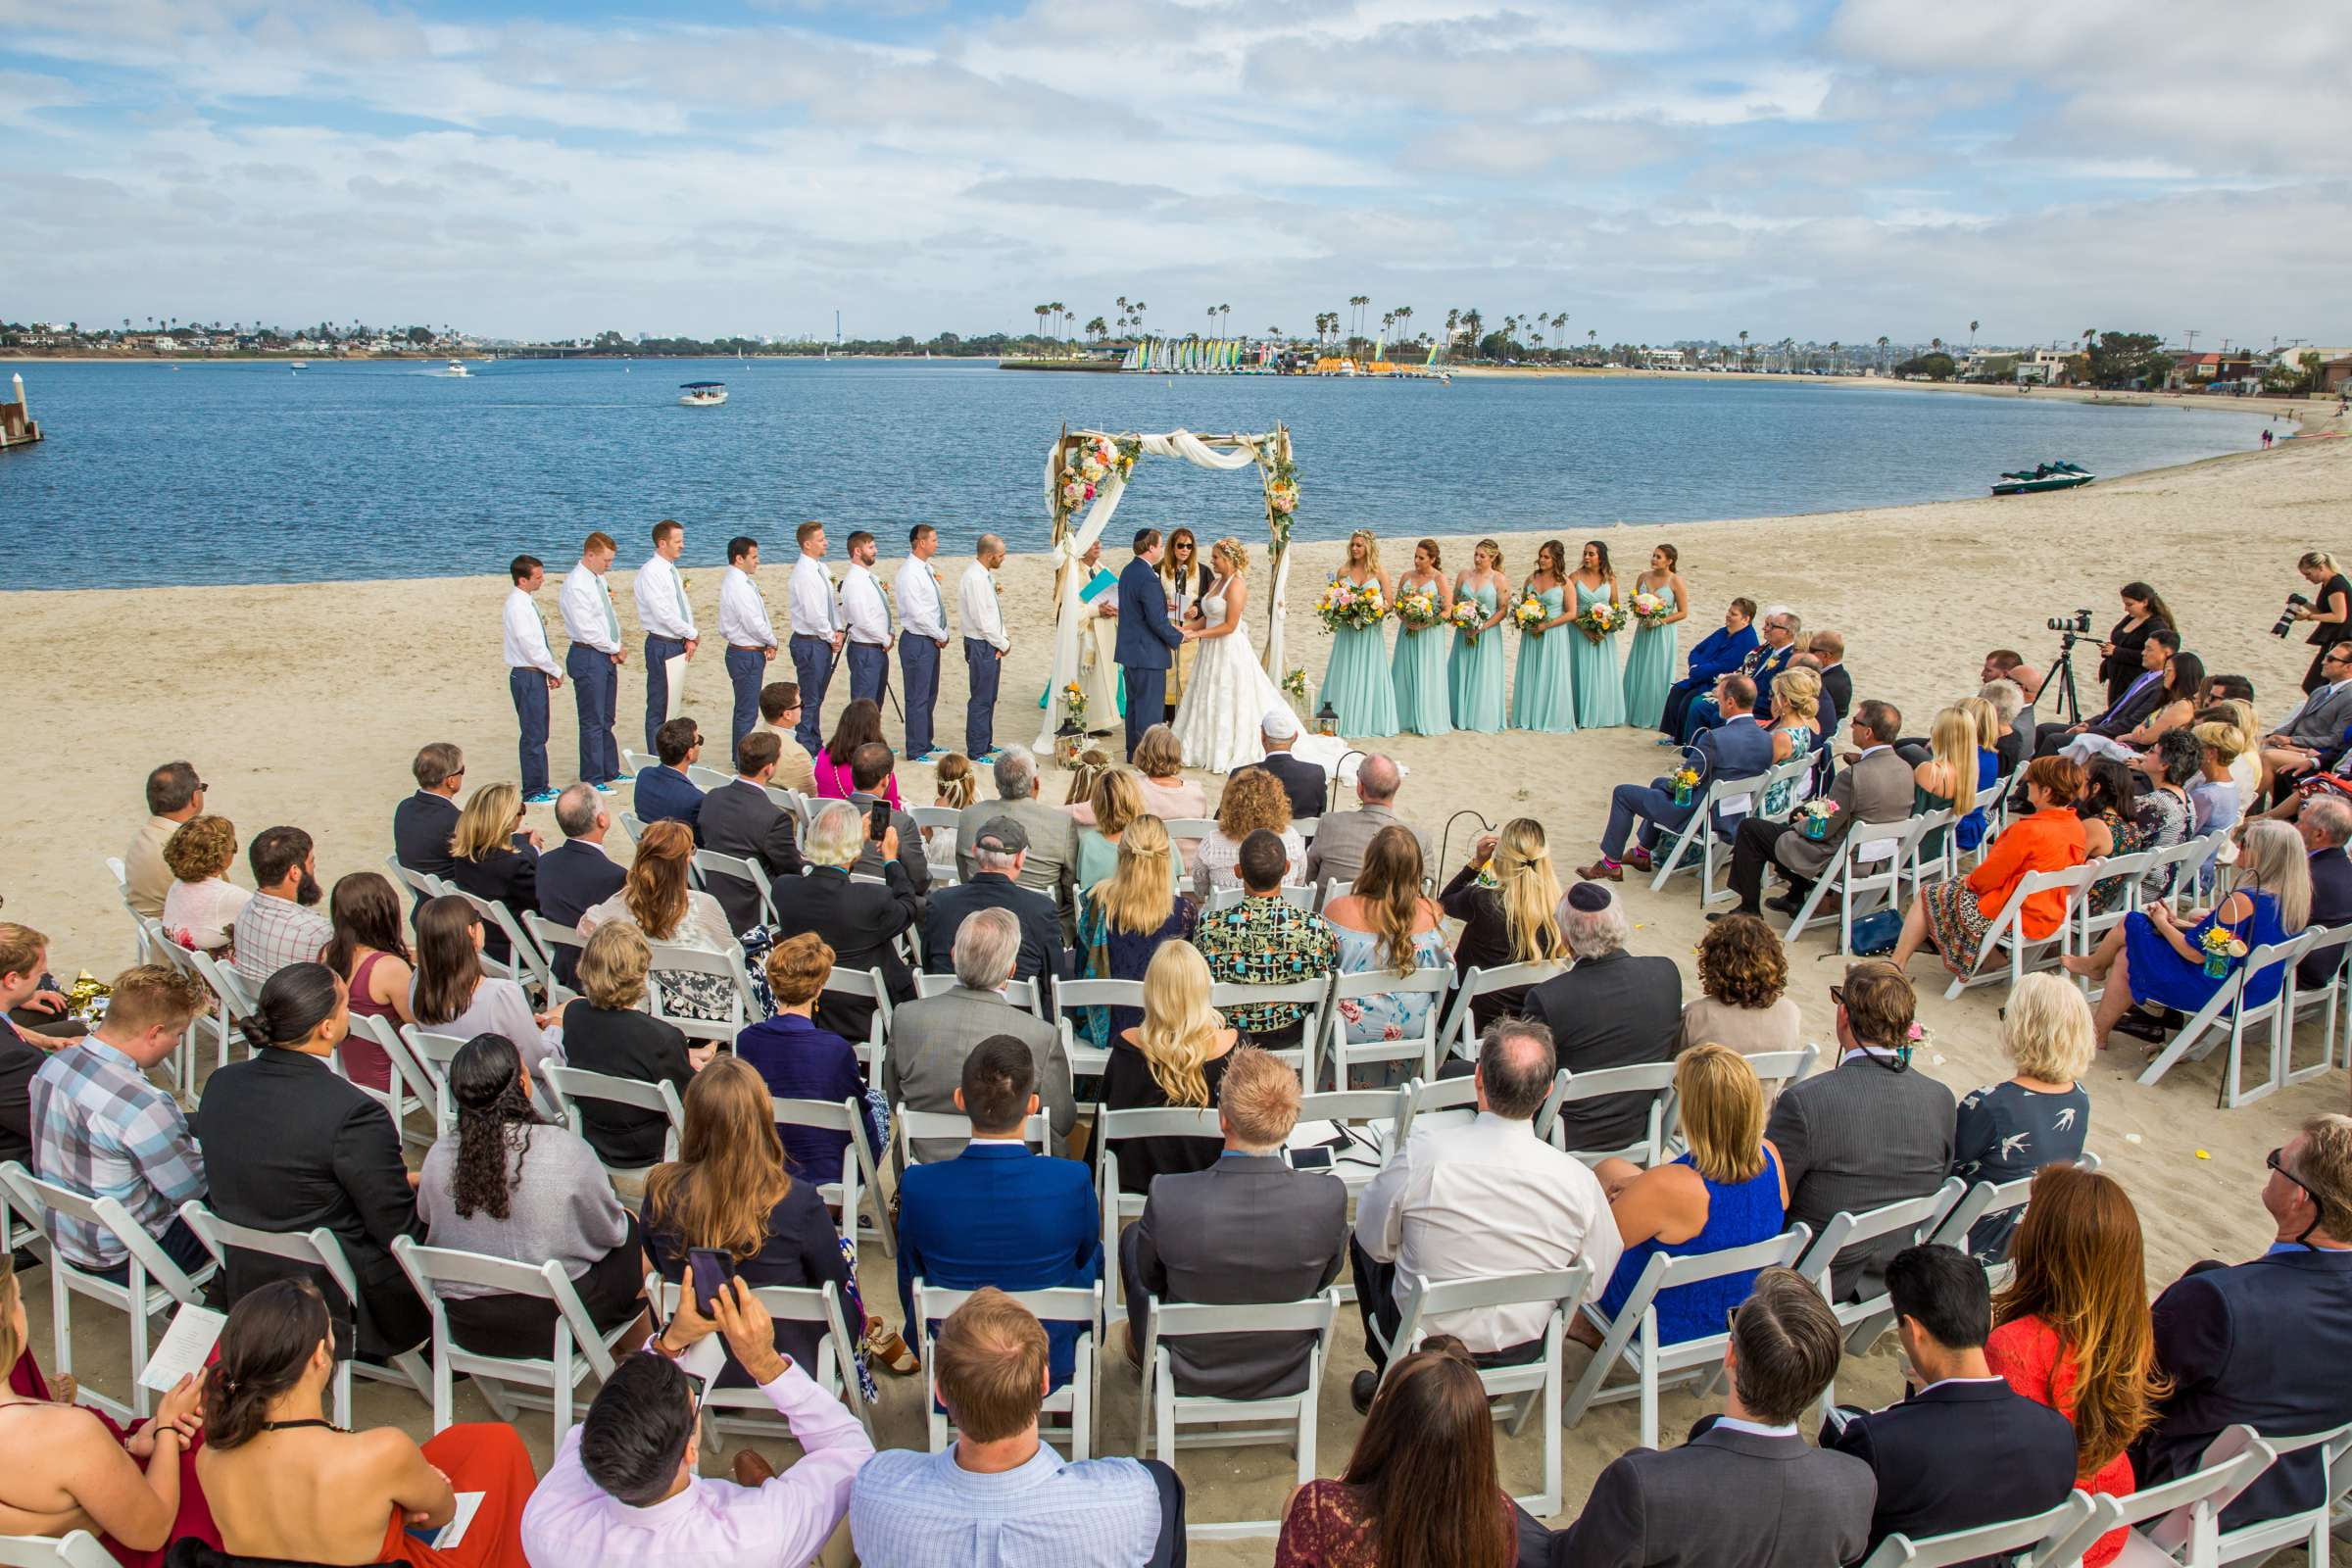 Catamaran Resort Wedding coordinated by Lavish Weddings, Brittany and David Wedding Photo #73 by True Photography